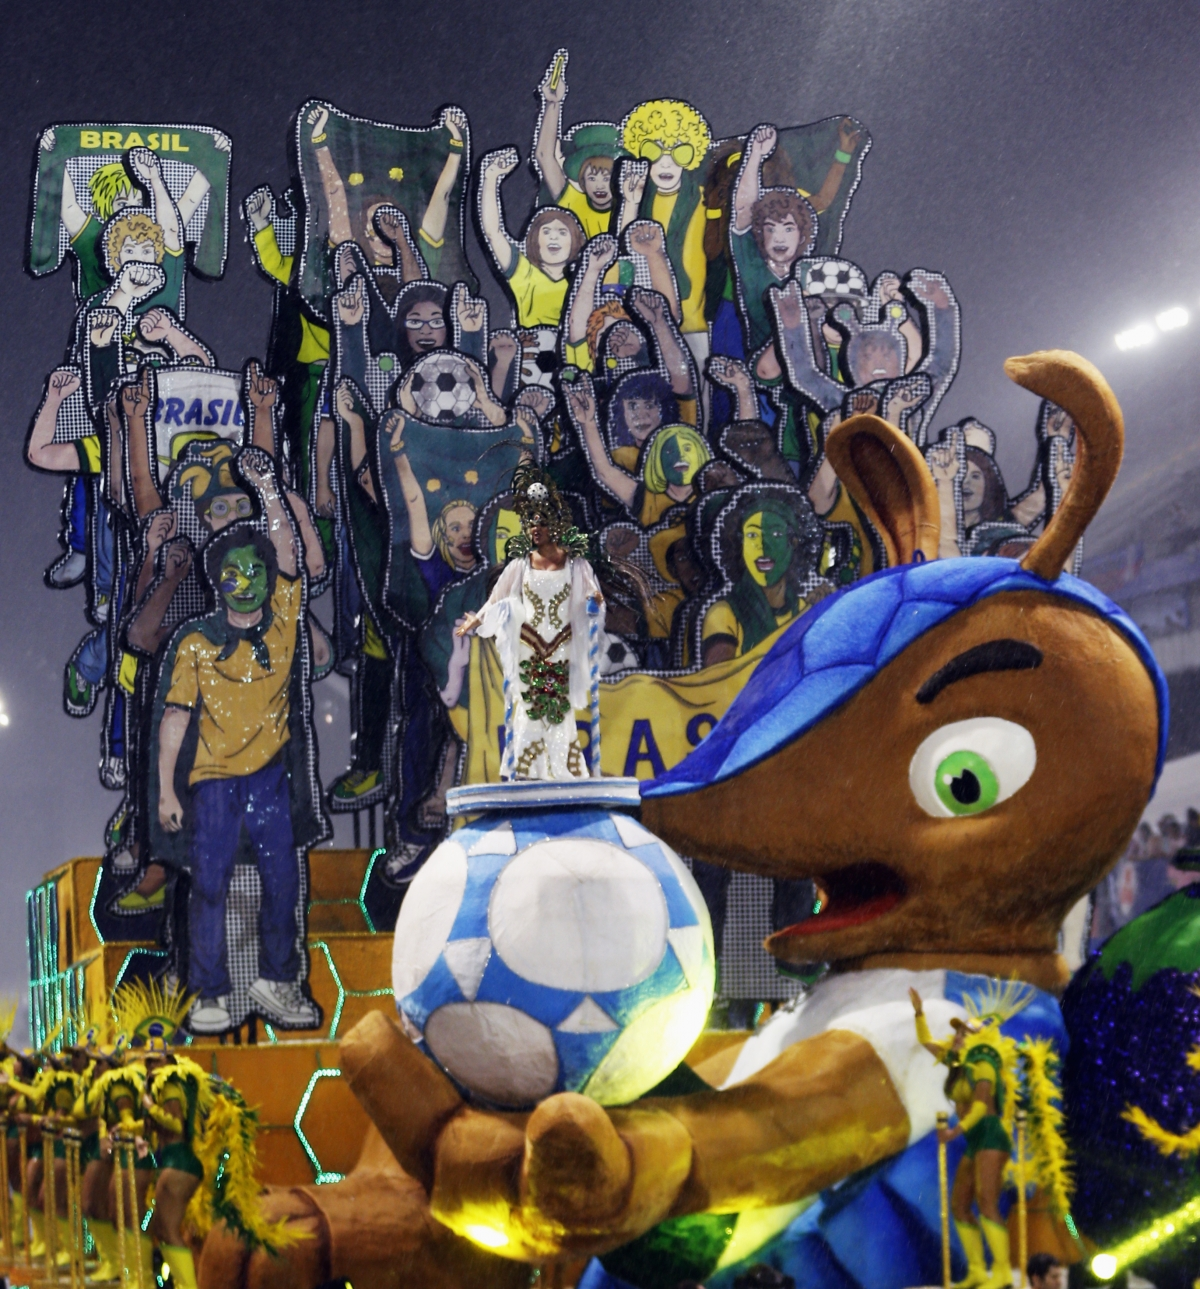 The official mascot of the FIFA 2014 World Cup, Fuleco the Armadillo, is seen in a float of Leandro de Itaquera samba school during the first night of the Special Group of the annual Carnival parade in Sao Paulo's Sambadrome February 28, 2014.